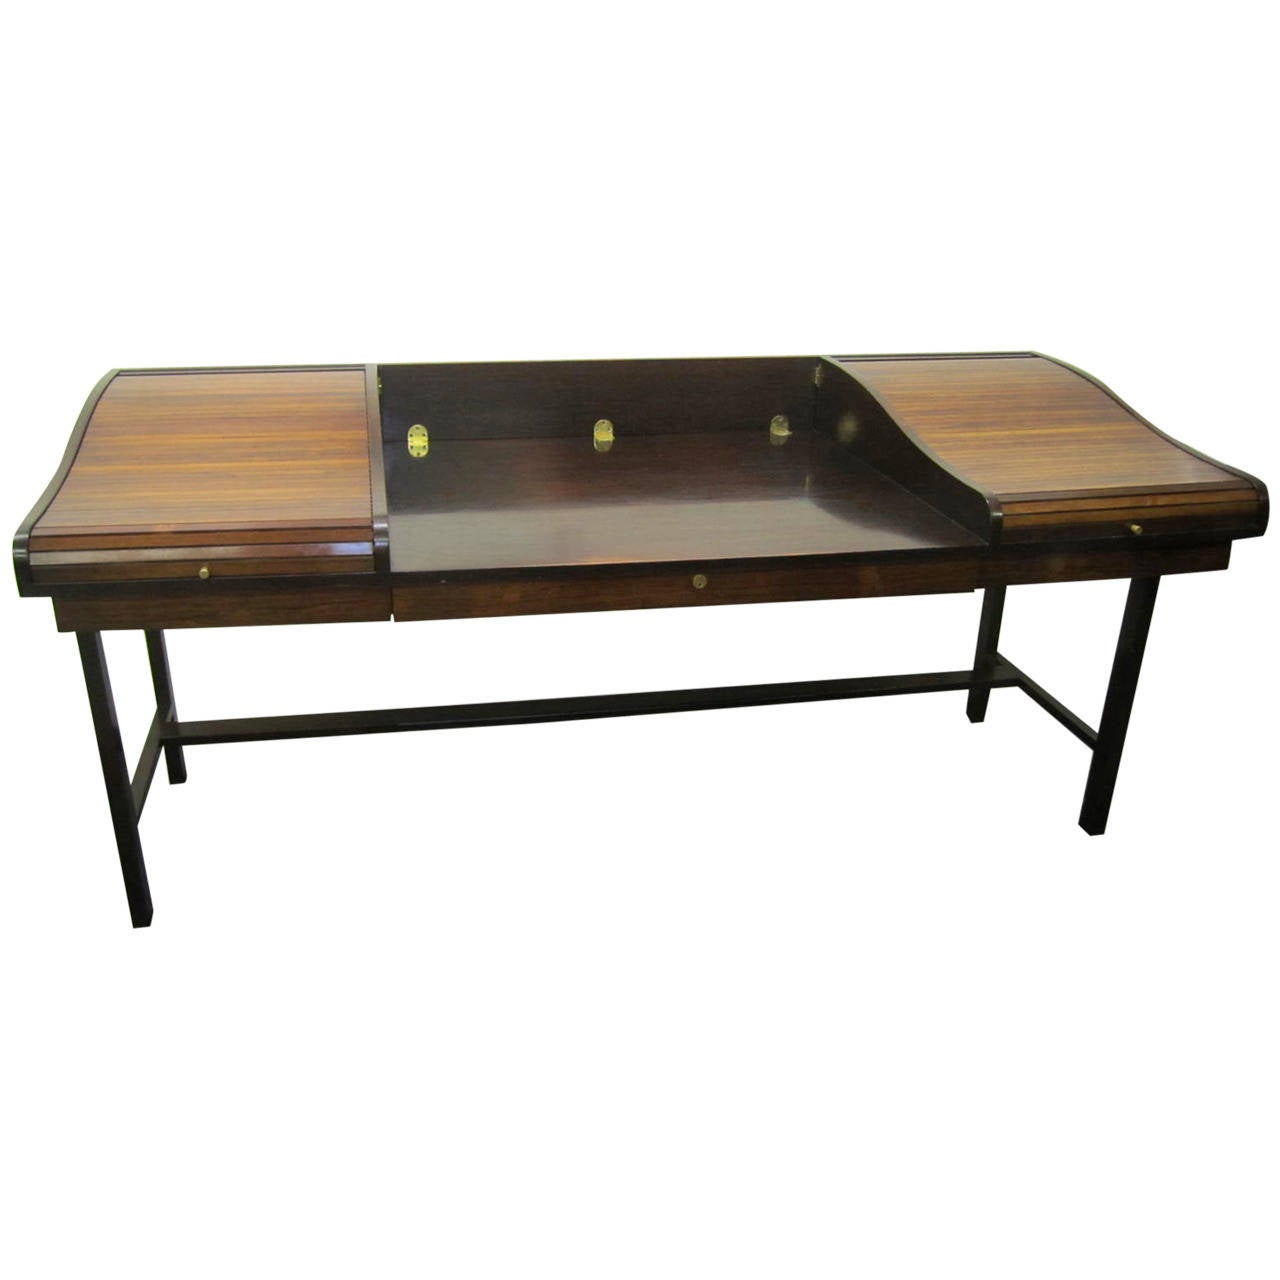 Excellent Rosewood Roll Top Desk by Edward Wormley for Dunbar Mid-Century Modern For Sale